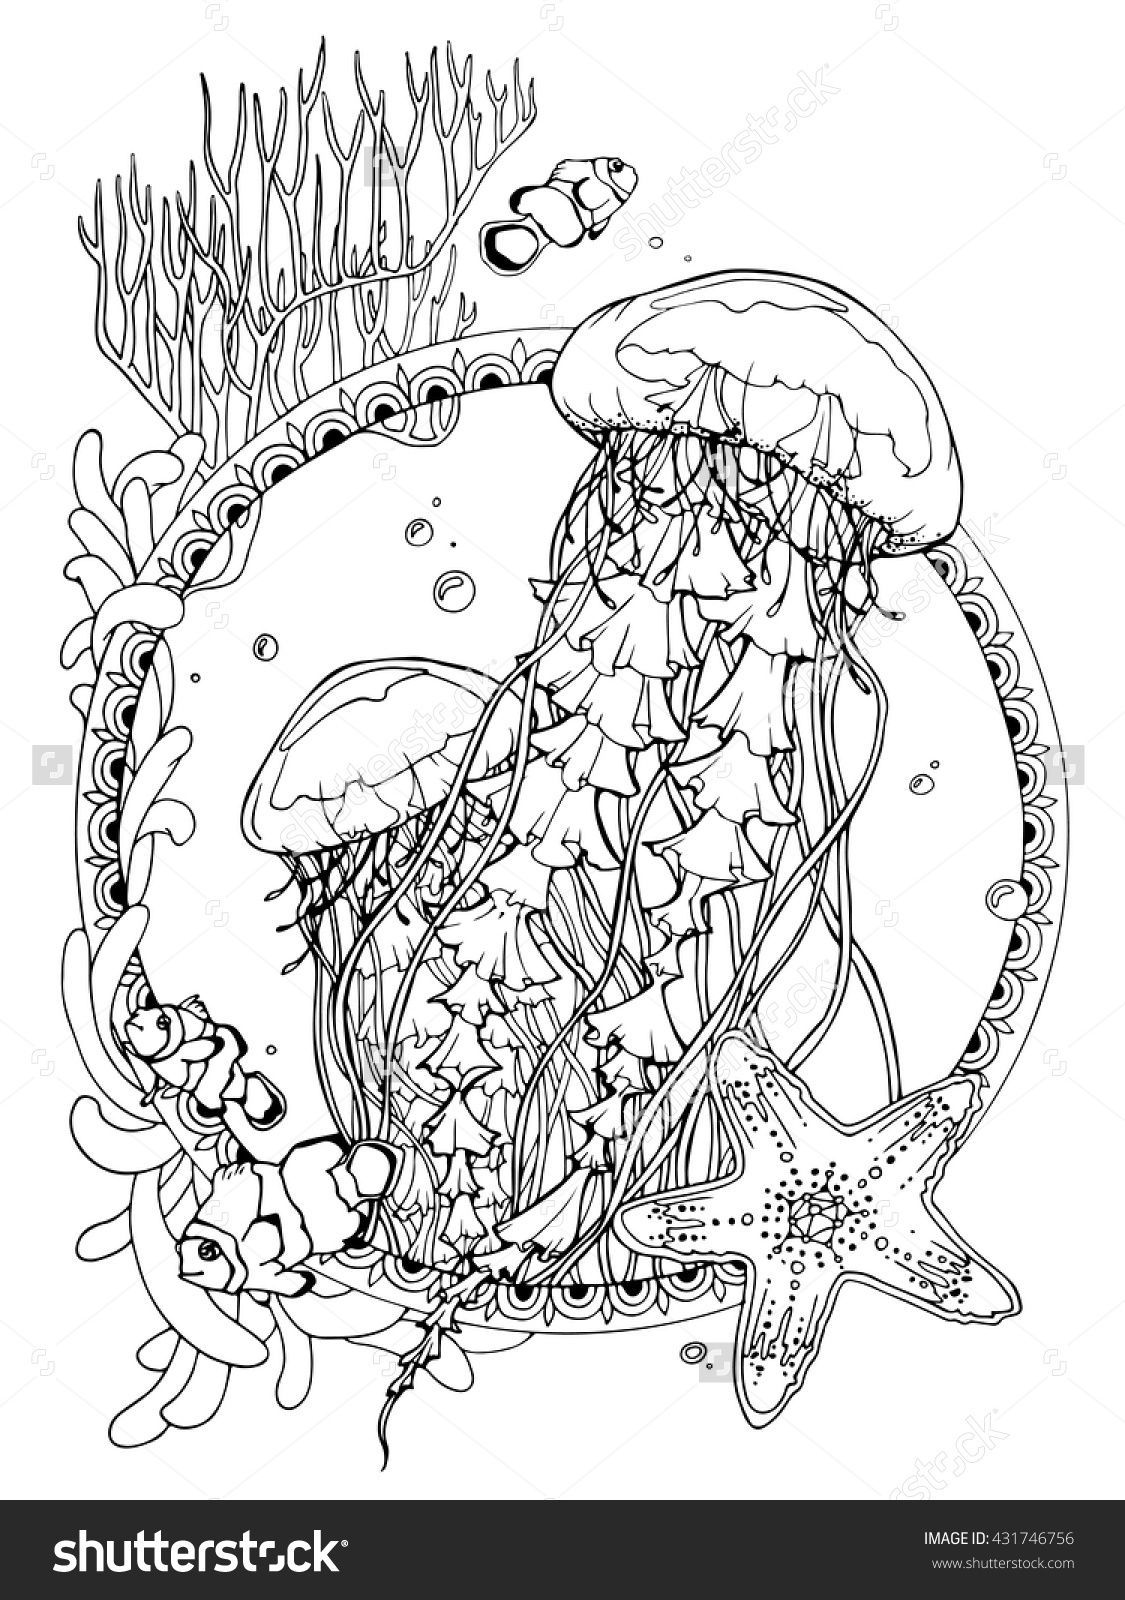 coloring page for adults; antistress drawing; ocean life ...